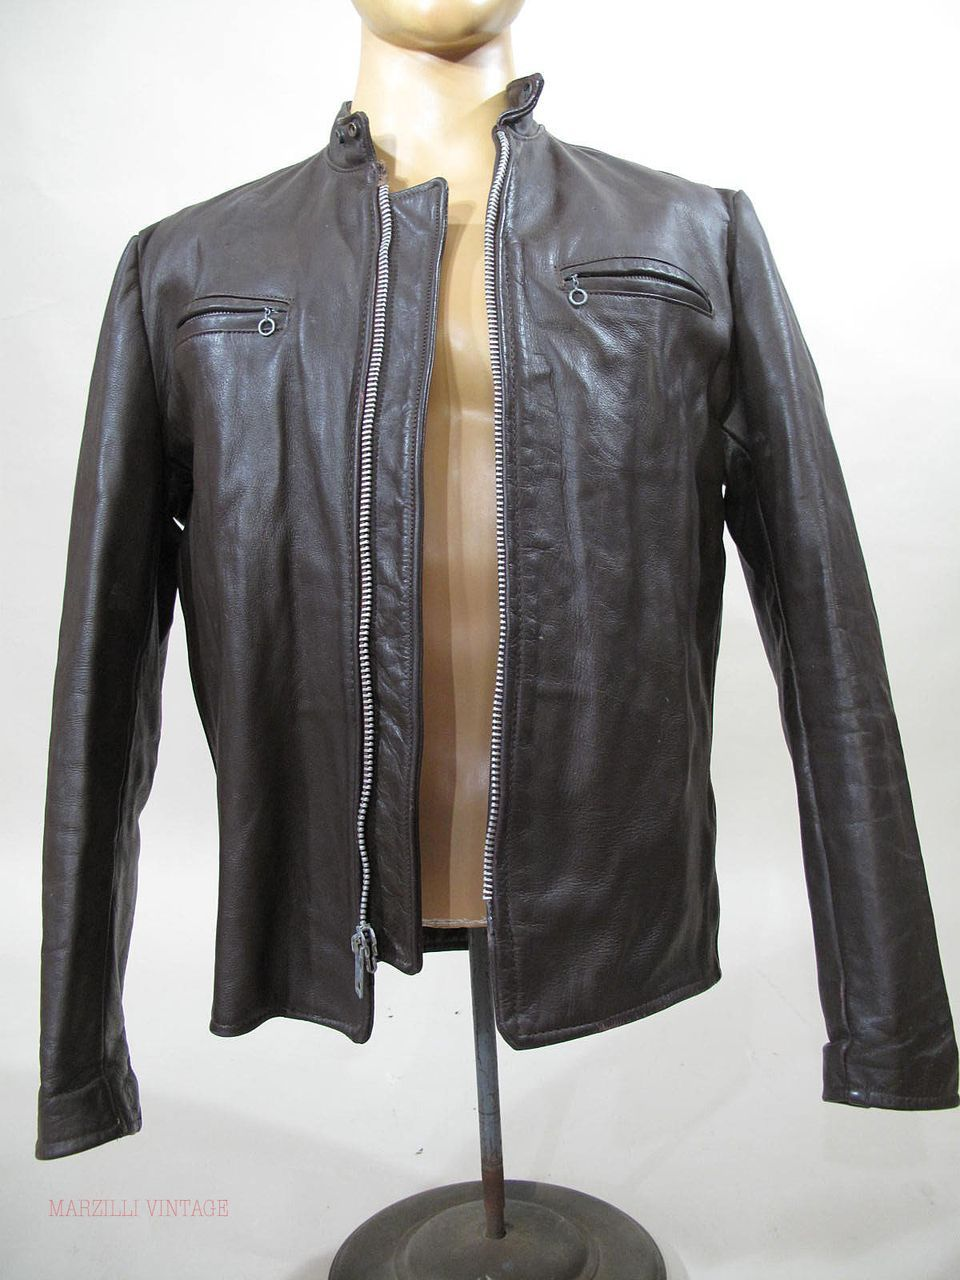 1950's Excelled Leather Cafe' Racer Jacket With Harley Davidson Patch